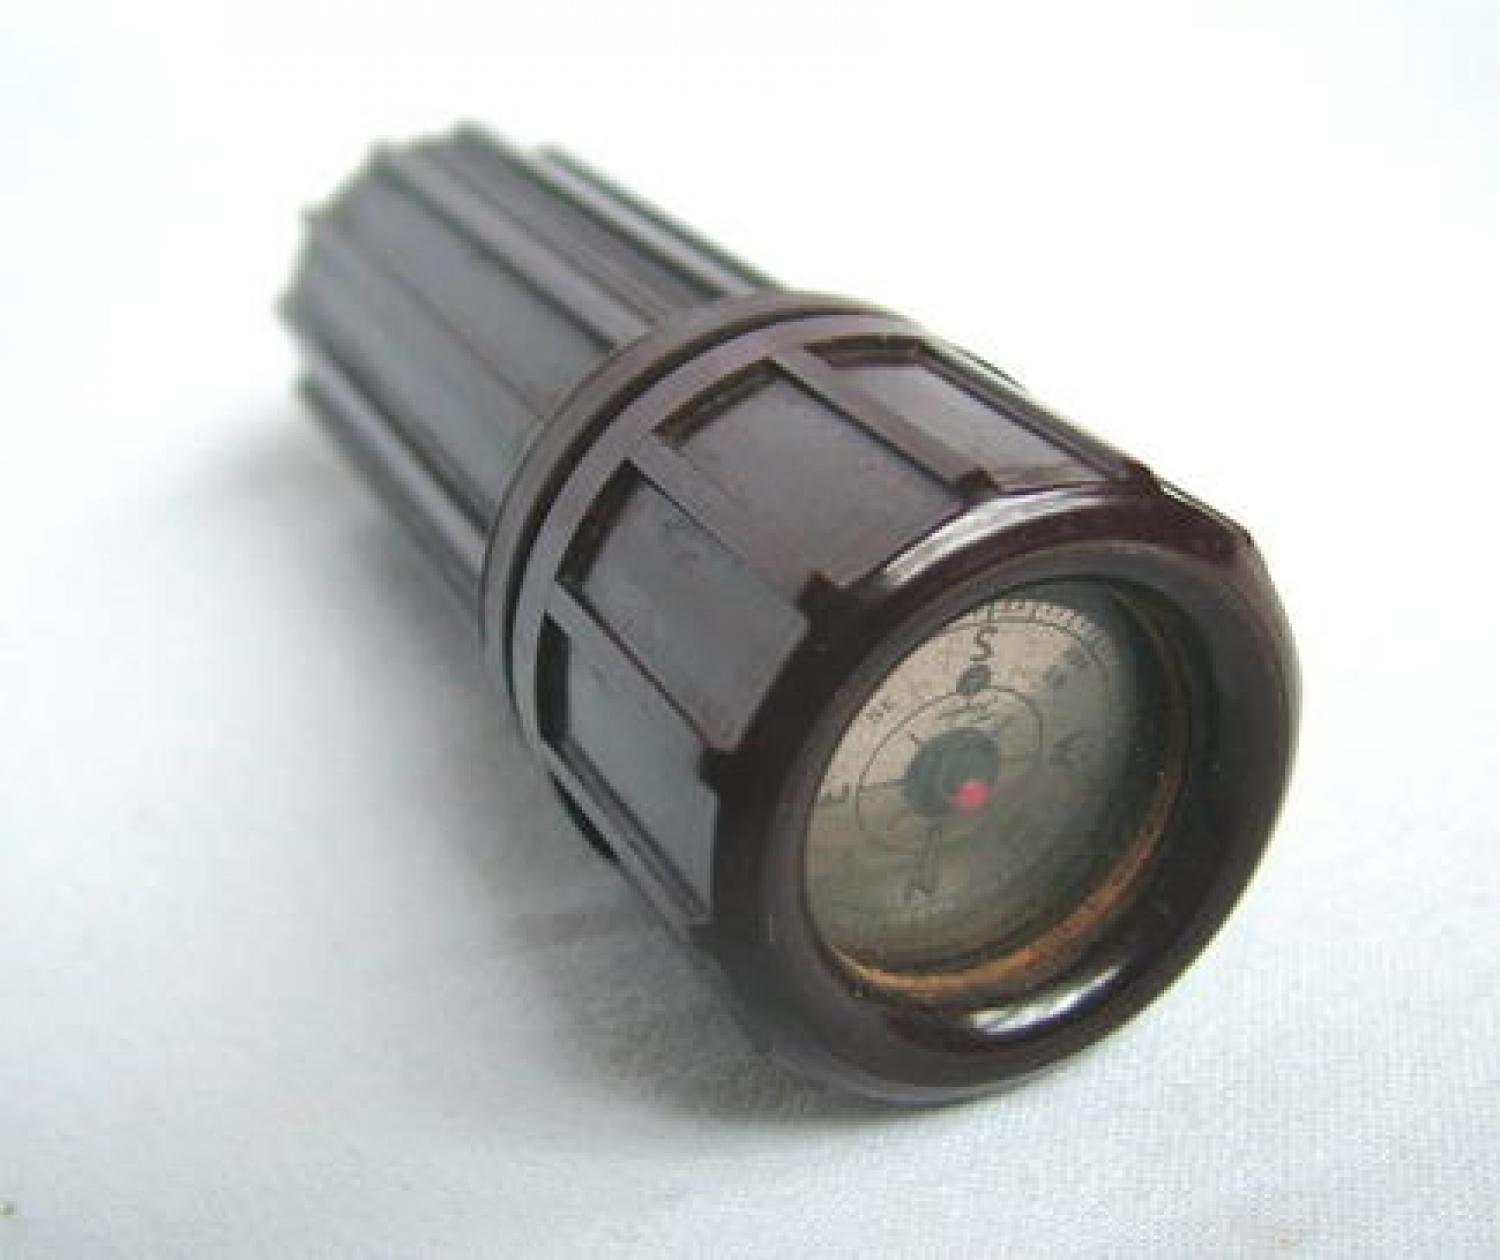 U.S.A.A.F. Issued Compass / Matchcase